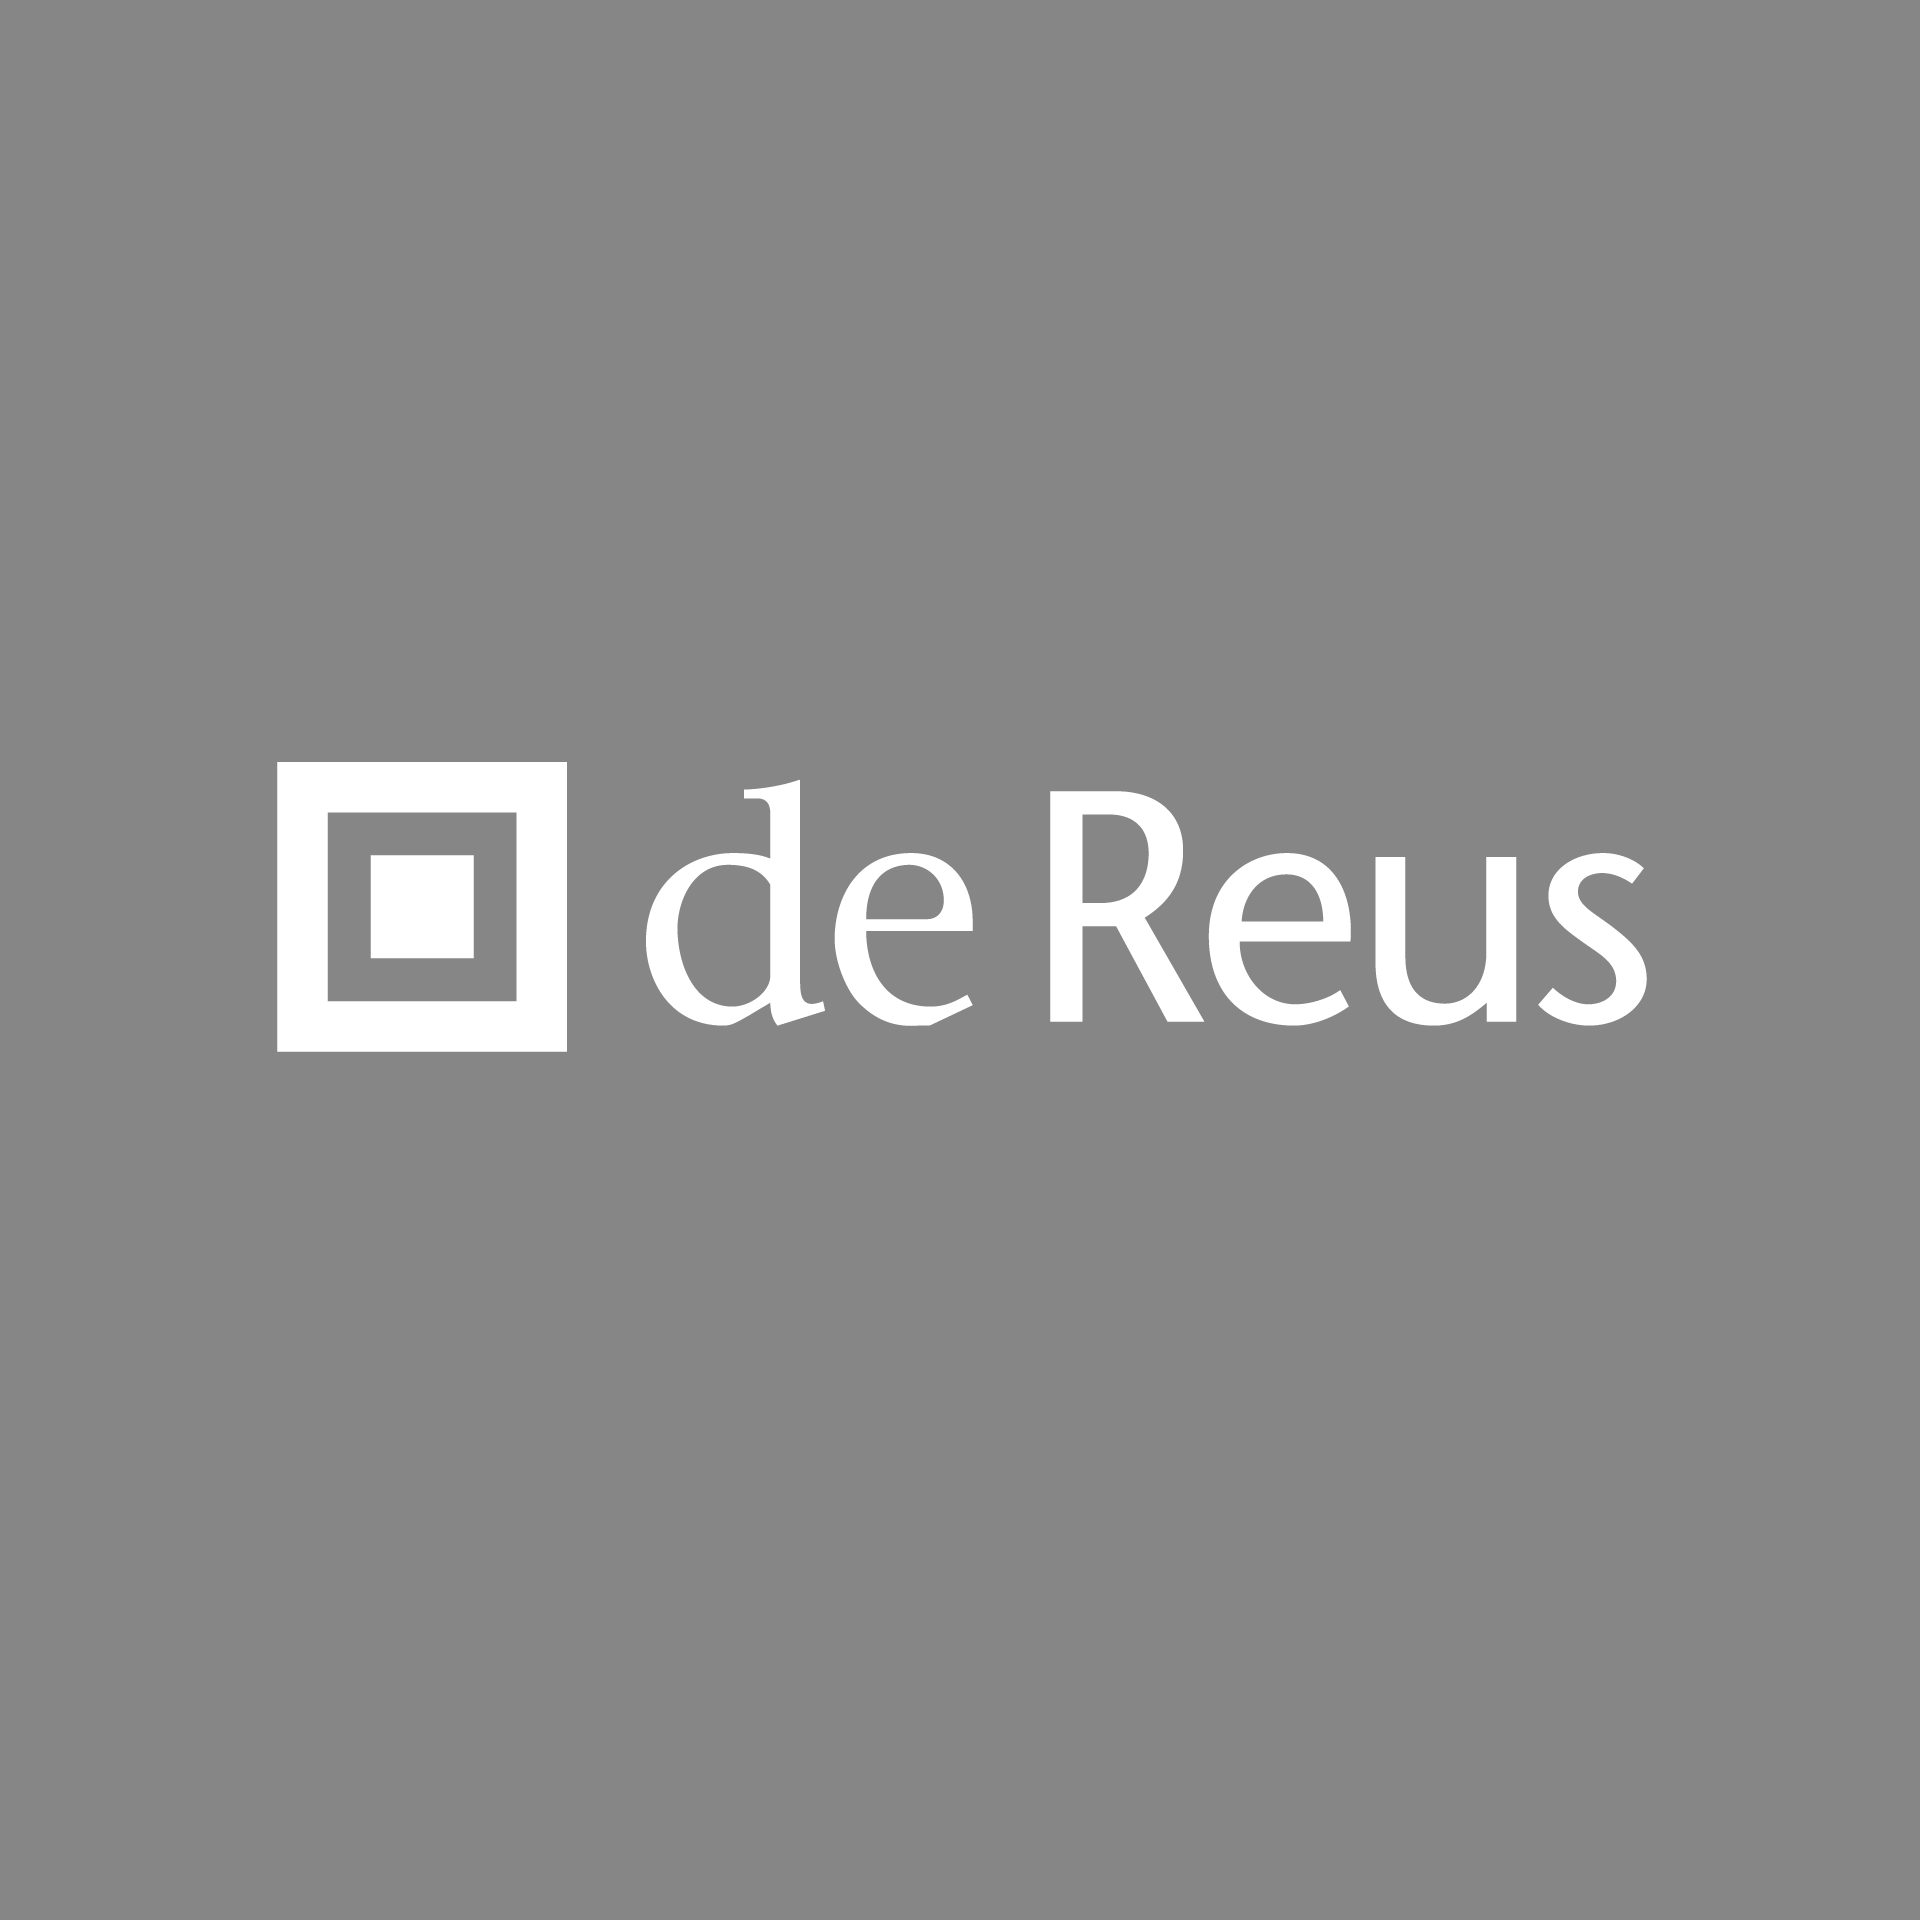 De Reus | Architects | Branding